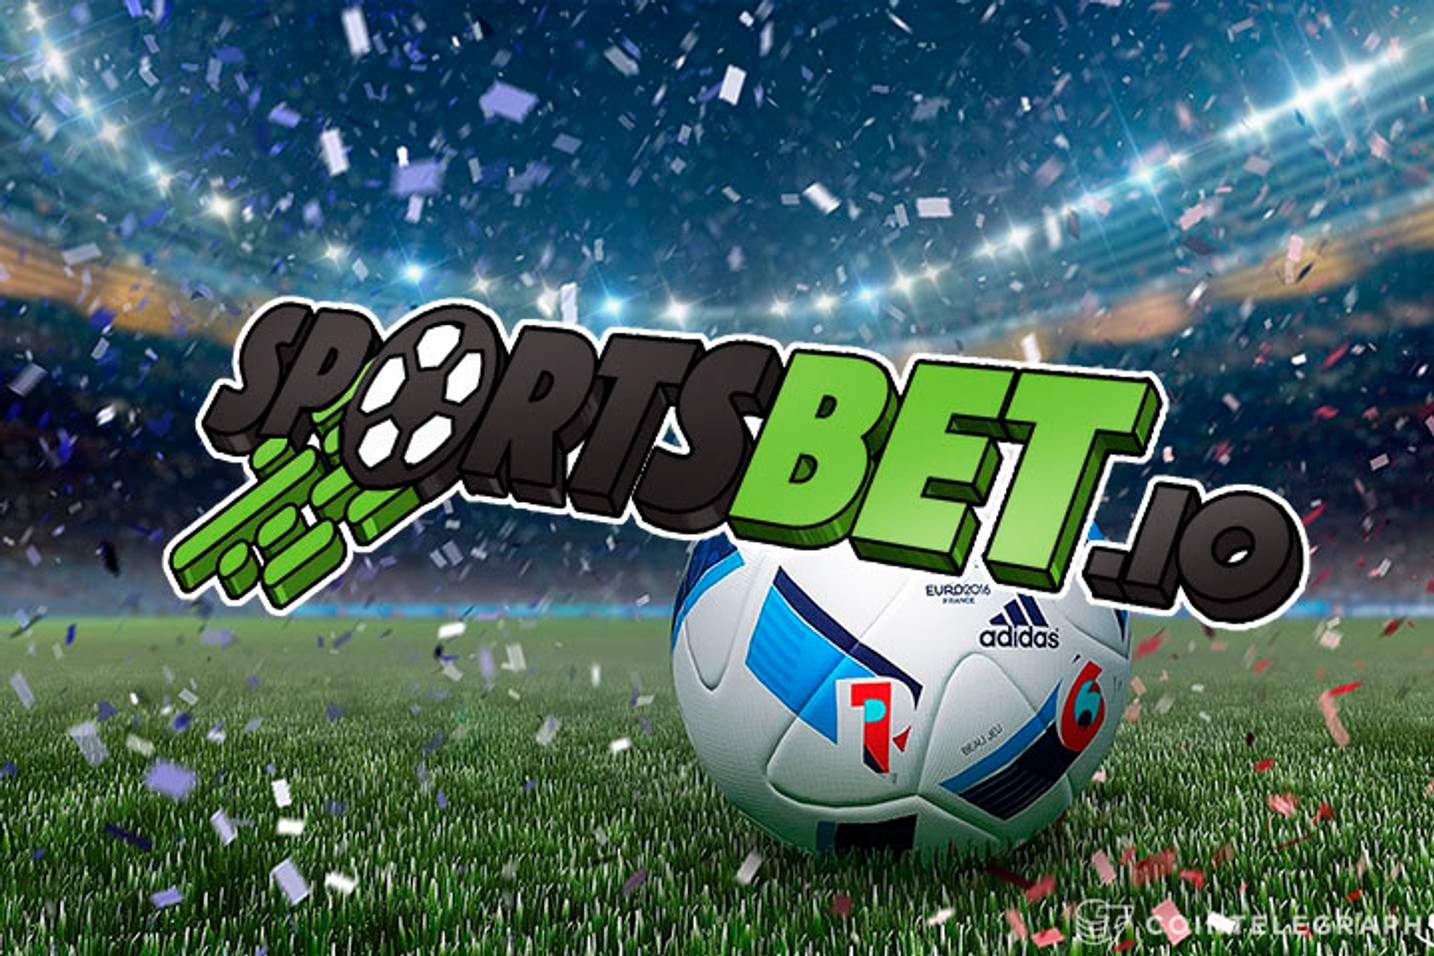 Bitcoin Sportsbook Kick-off Euro 2016 with Bumper Bets